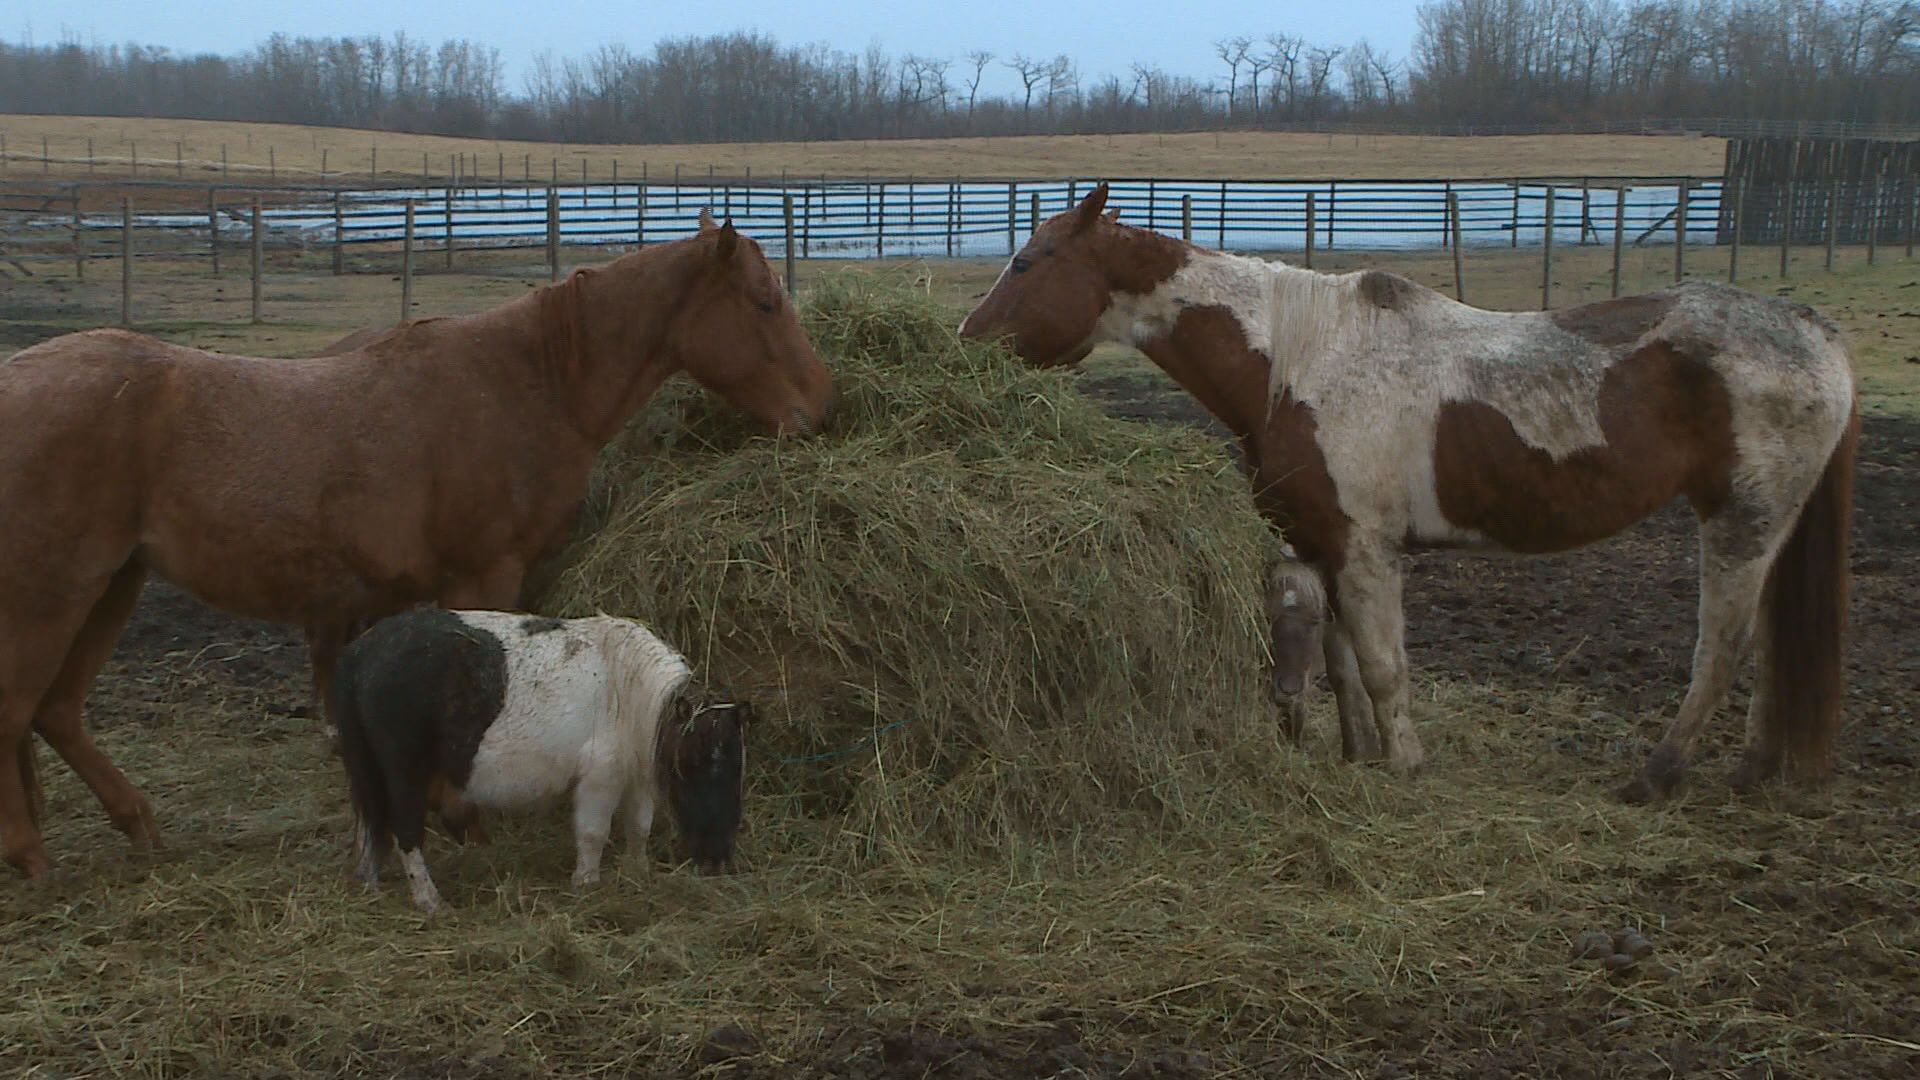 Hay shortage worrying farmers as winter approaches